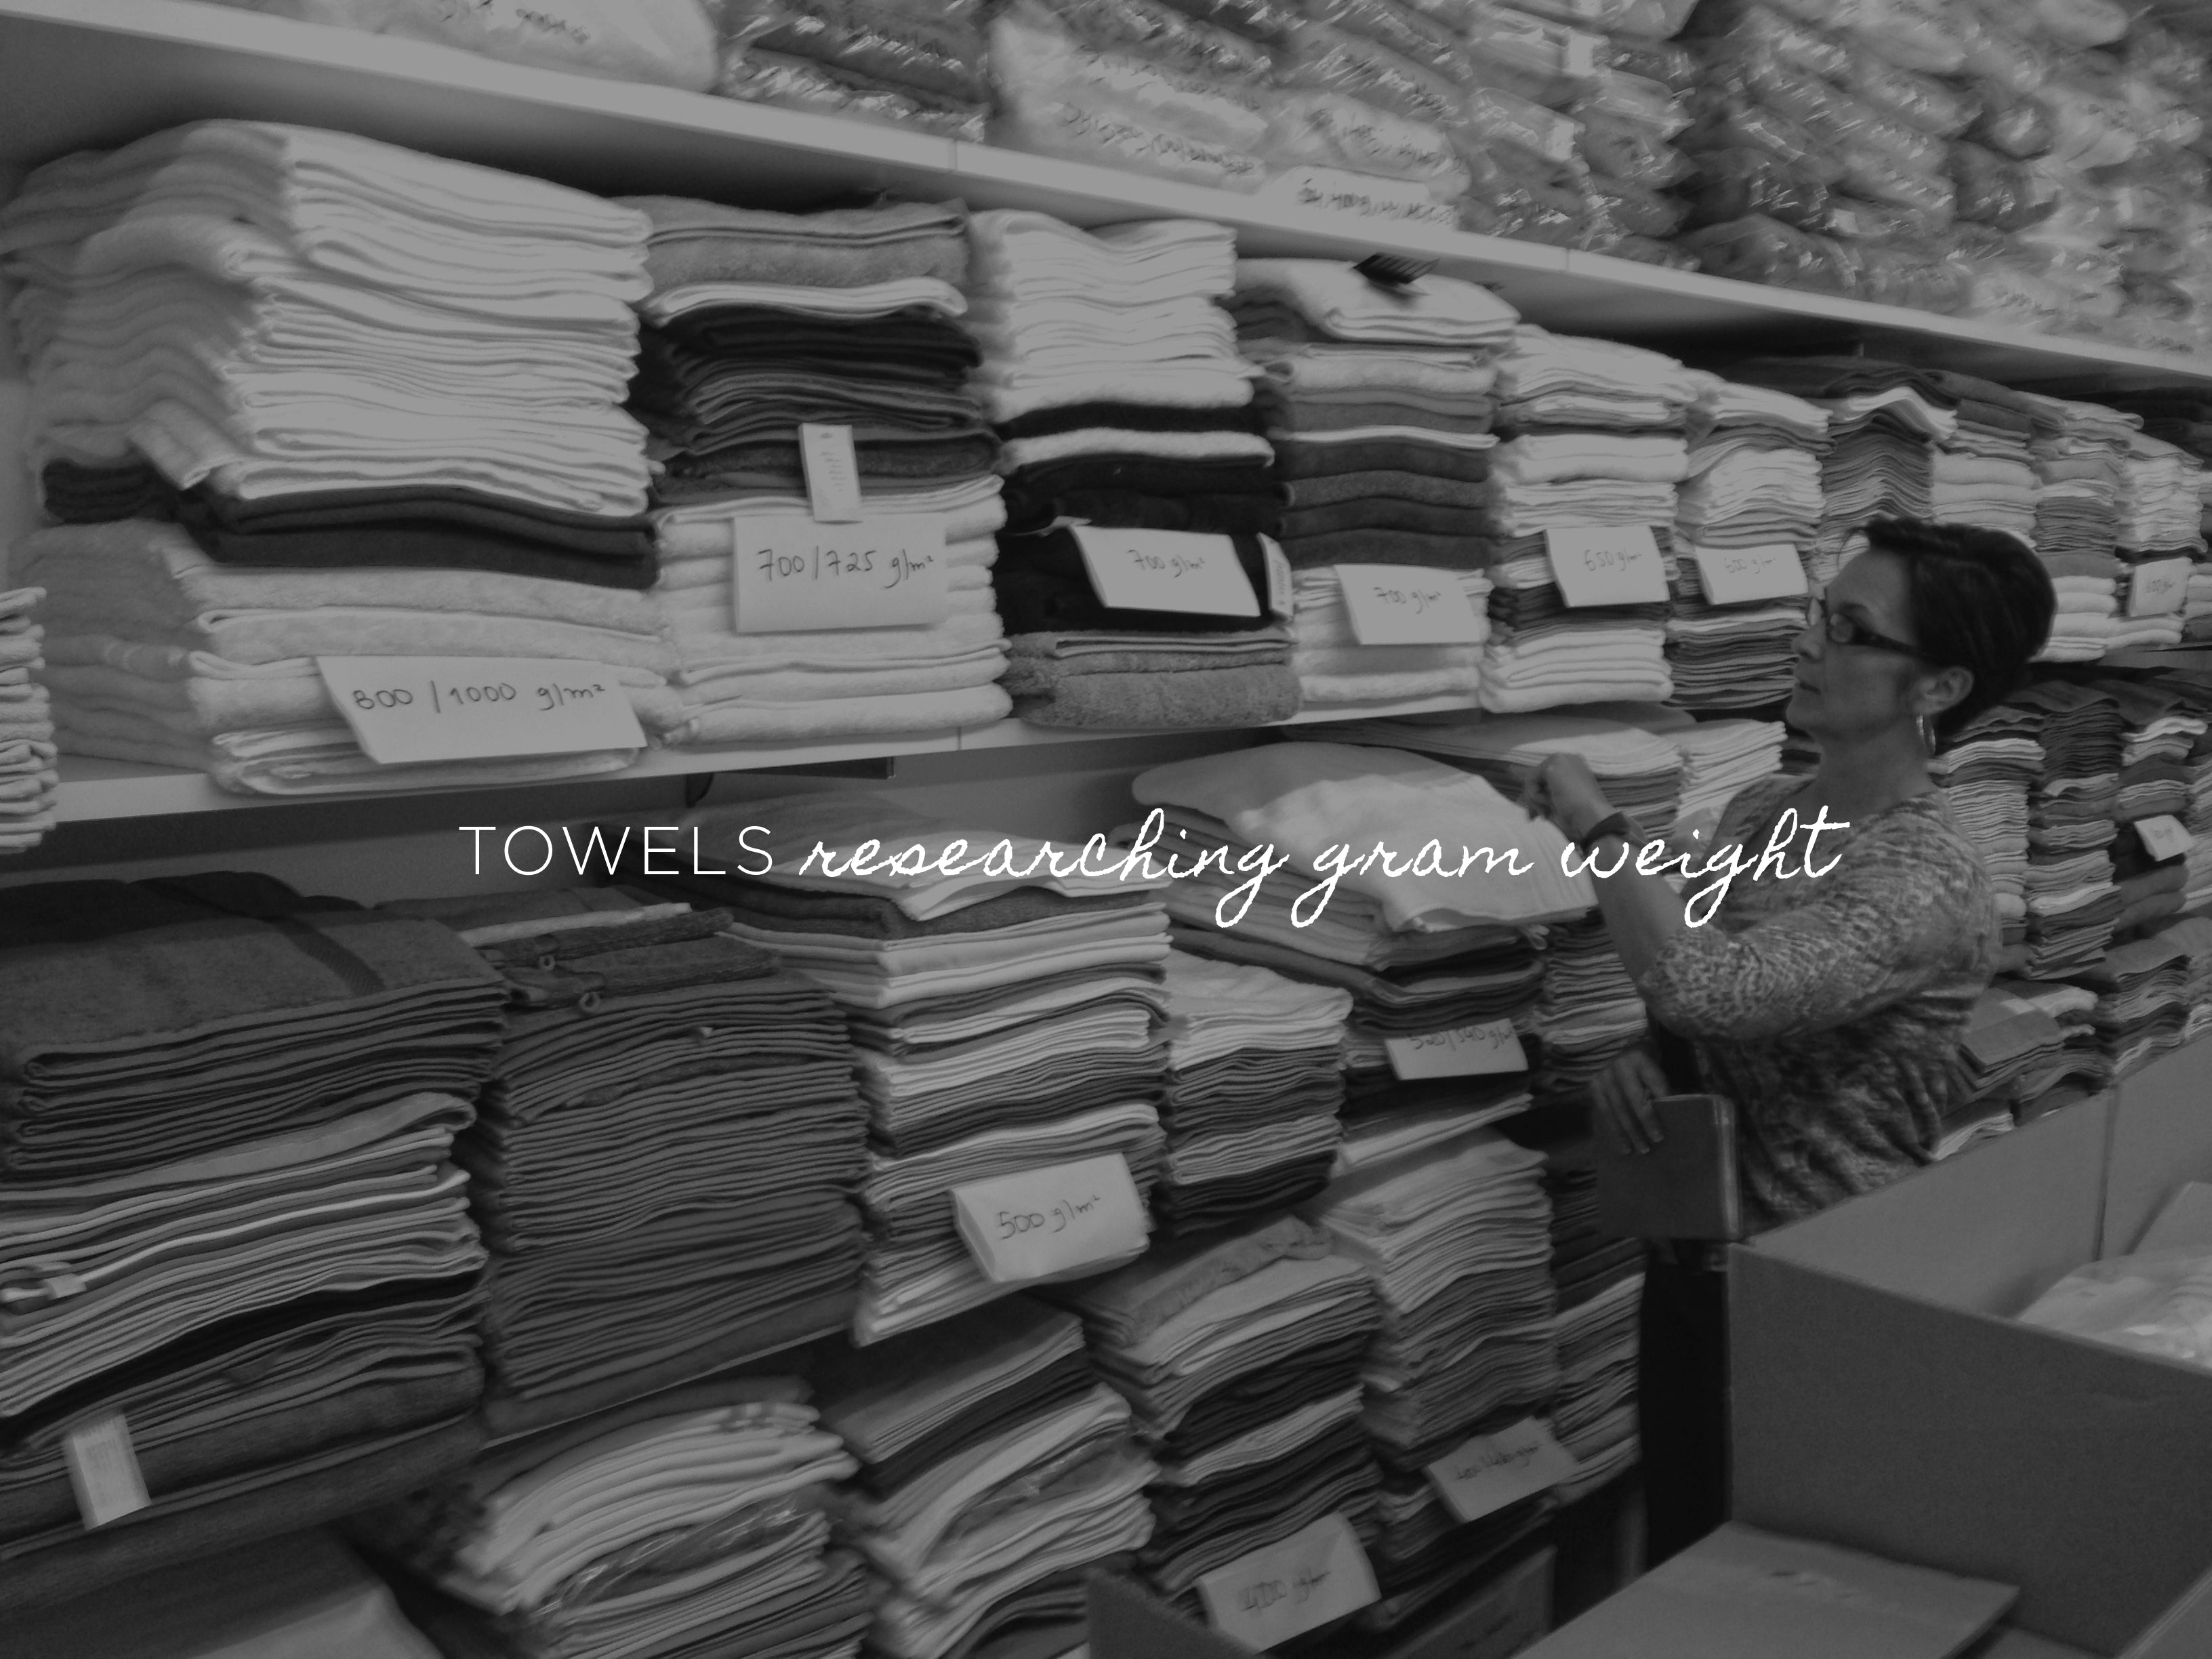 Krista exploring the towel stock and researching gram weight